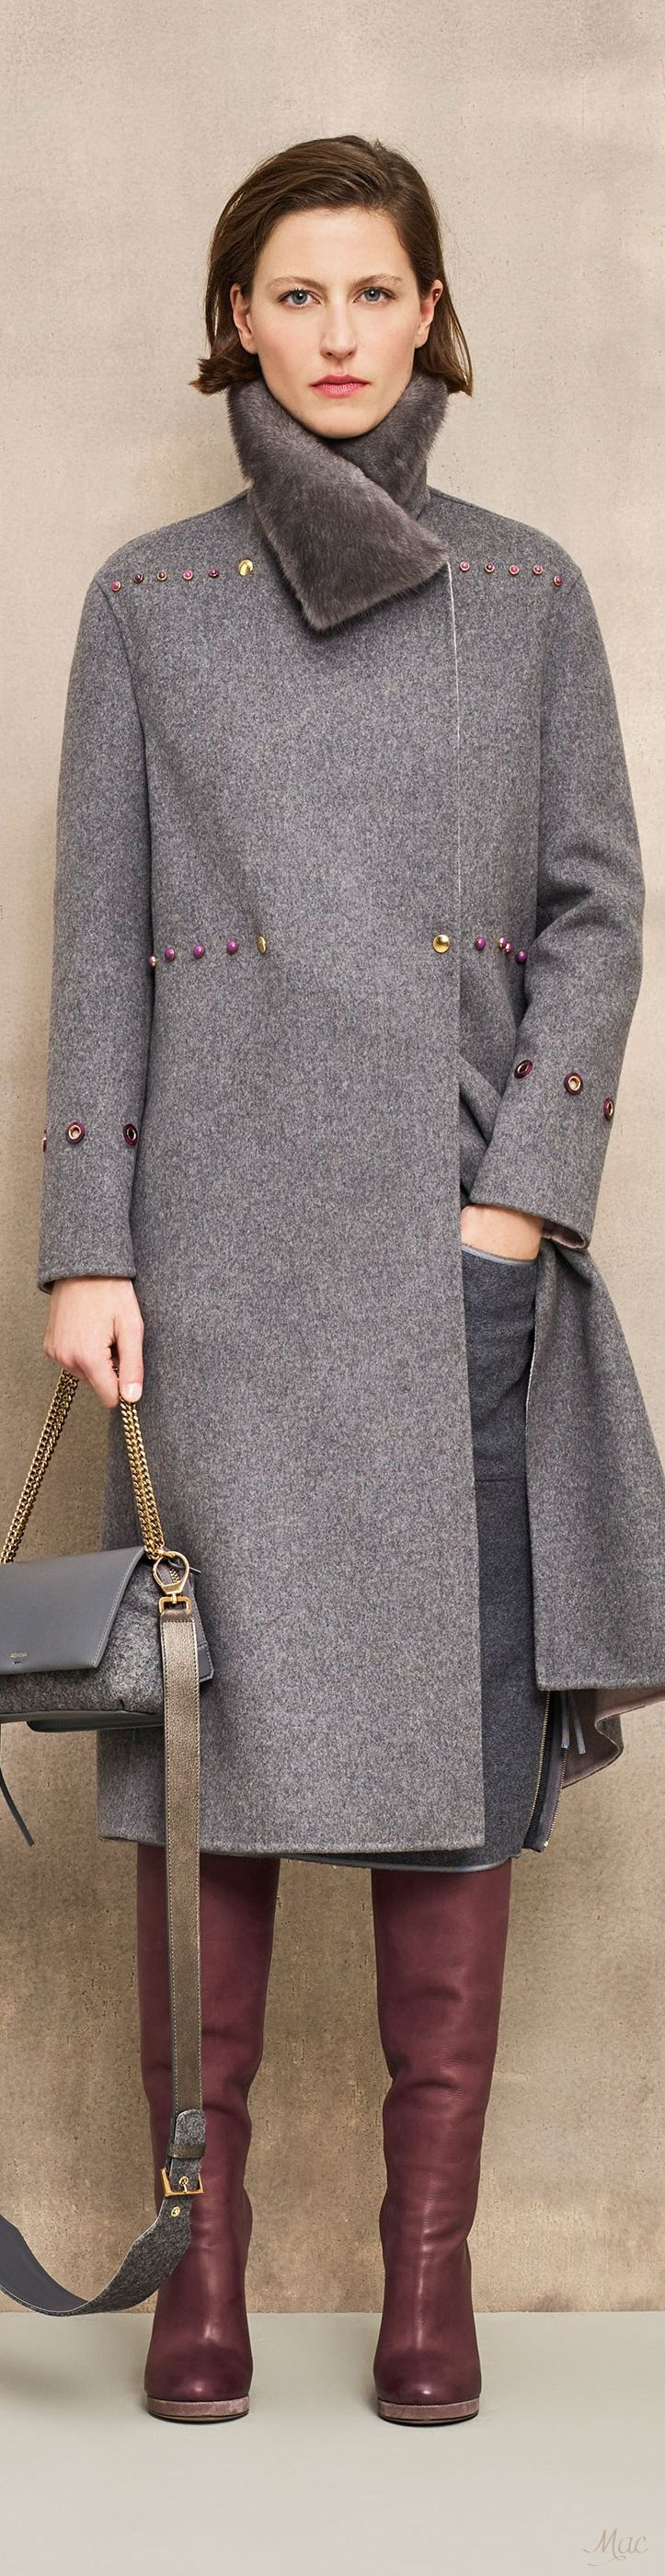 Find More at => http://feedproxy.google.com/~r/amazingoutfits/~3/5gFN82tSTlQ/AmazingOutfits.page